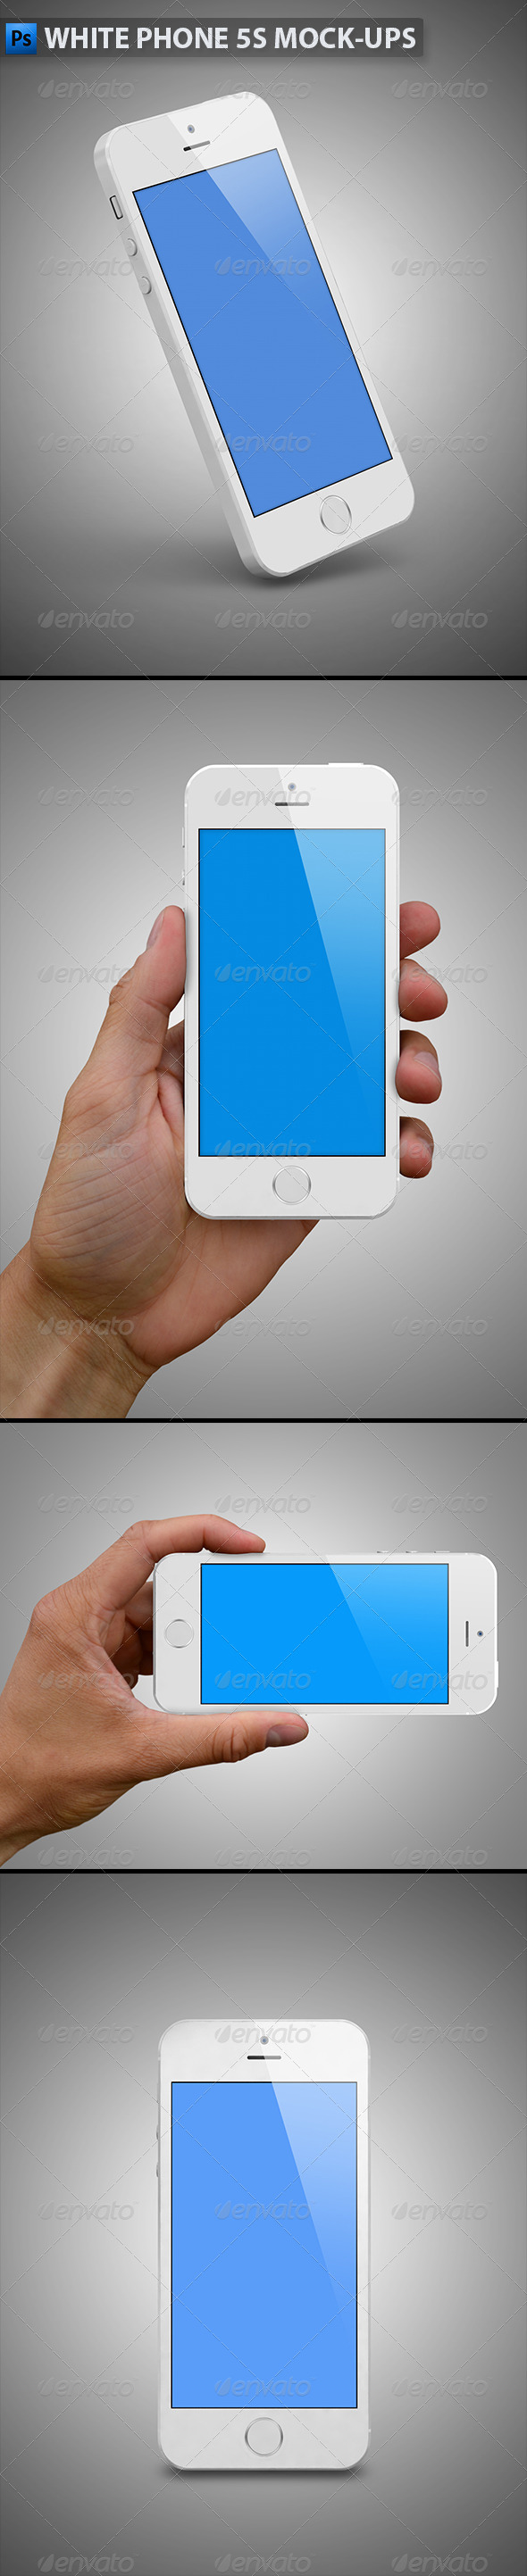 White Phone 5s Mock-Ups - Mobile Displays